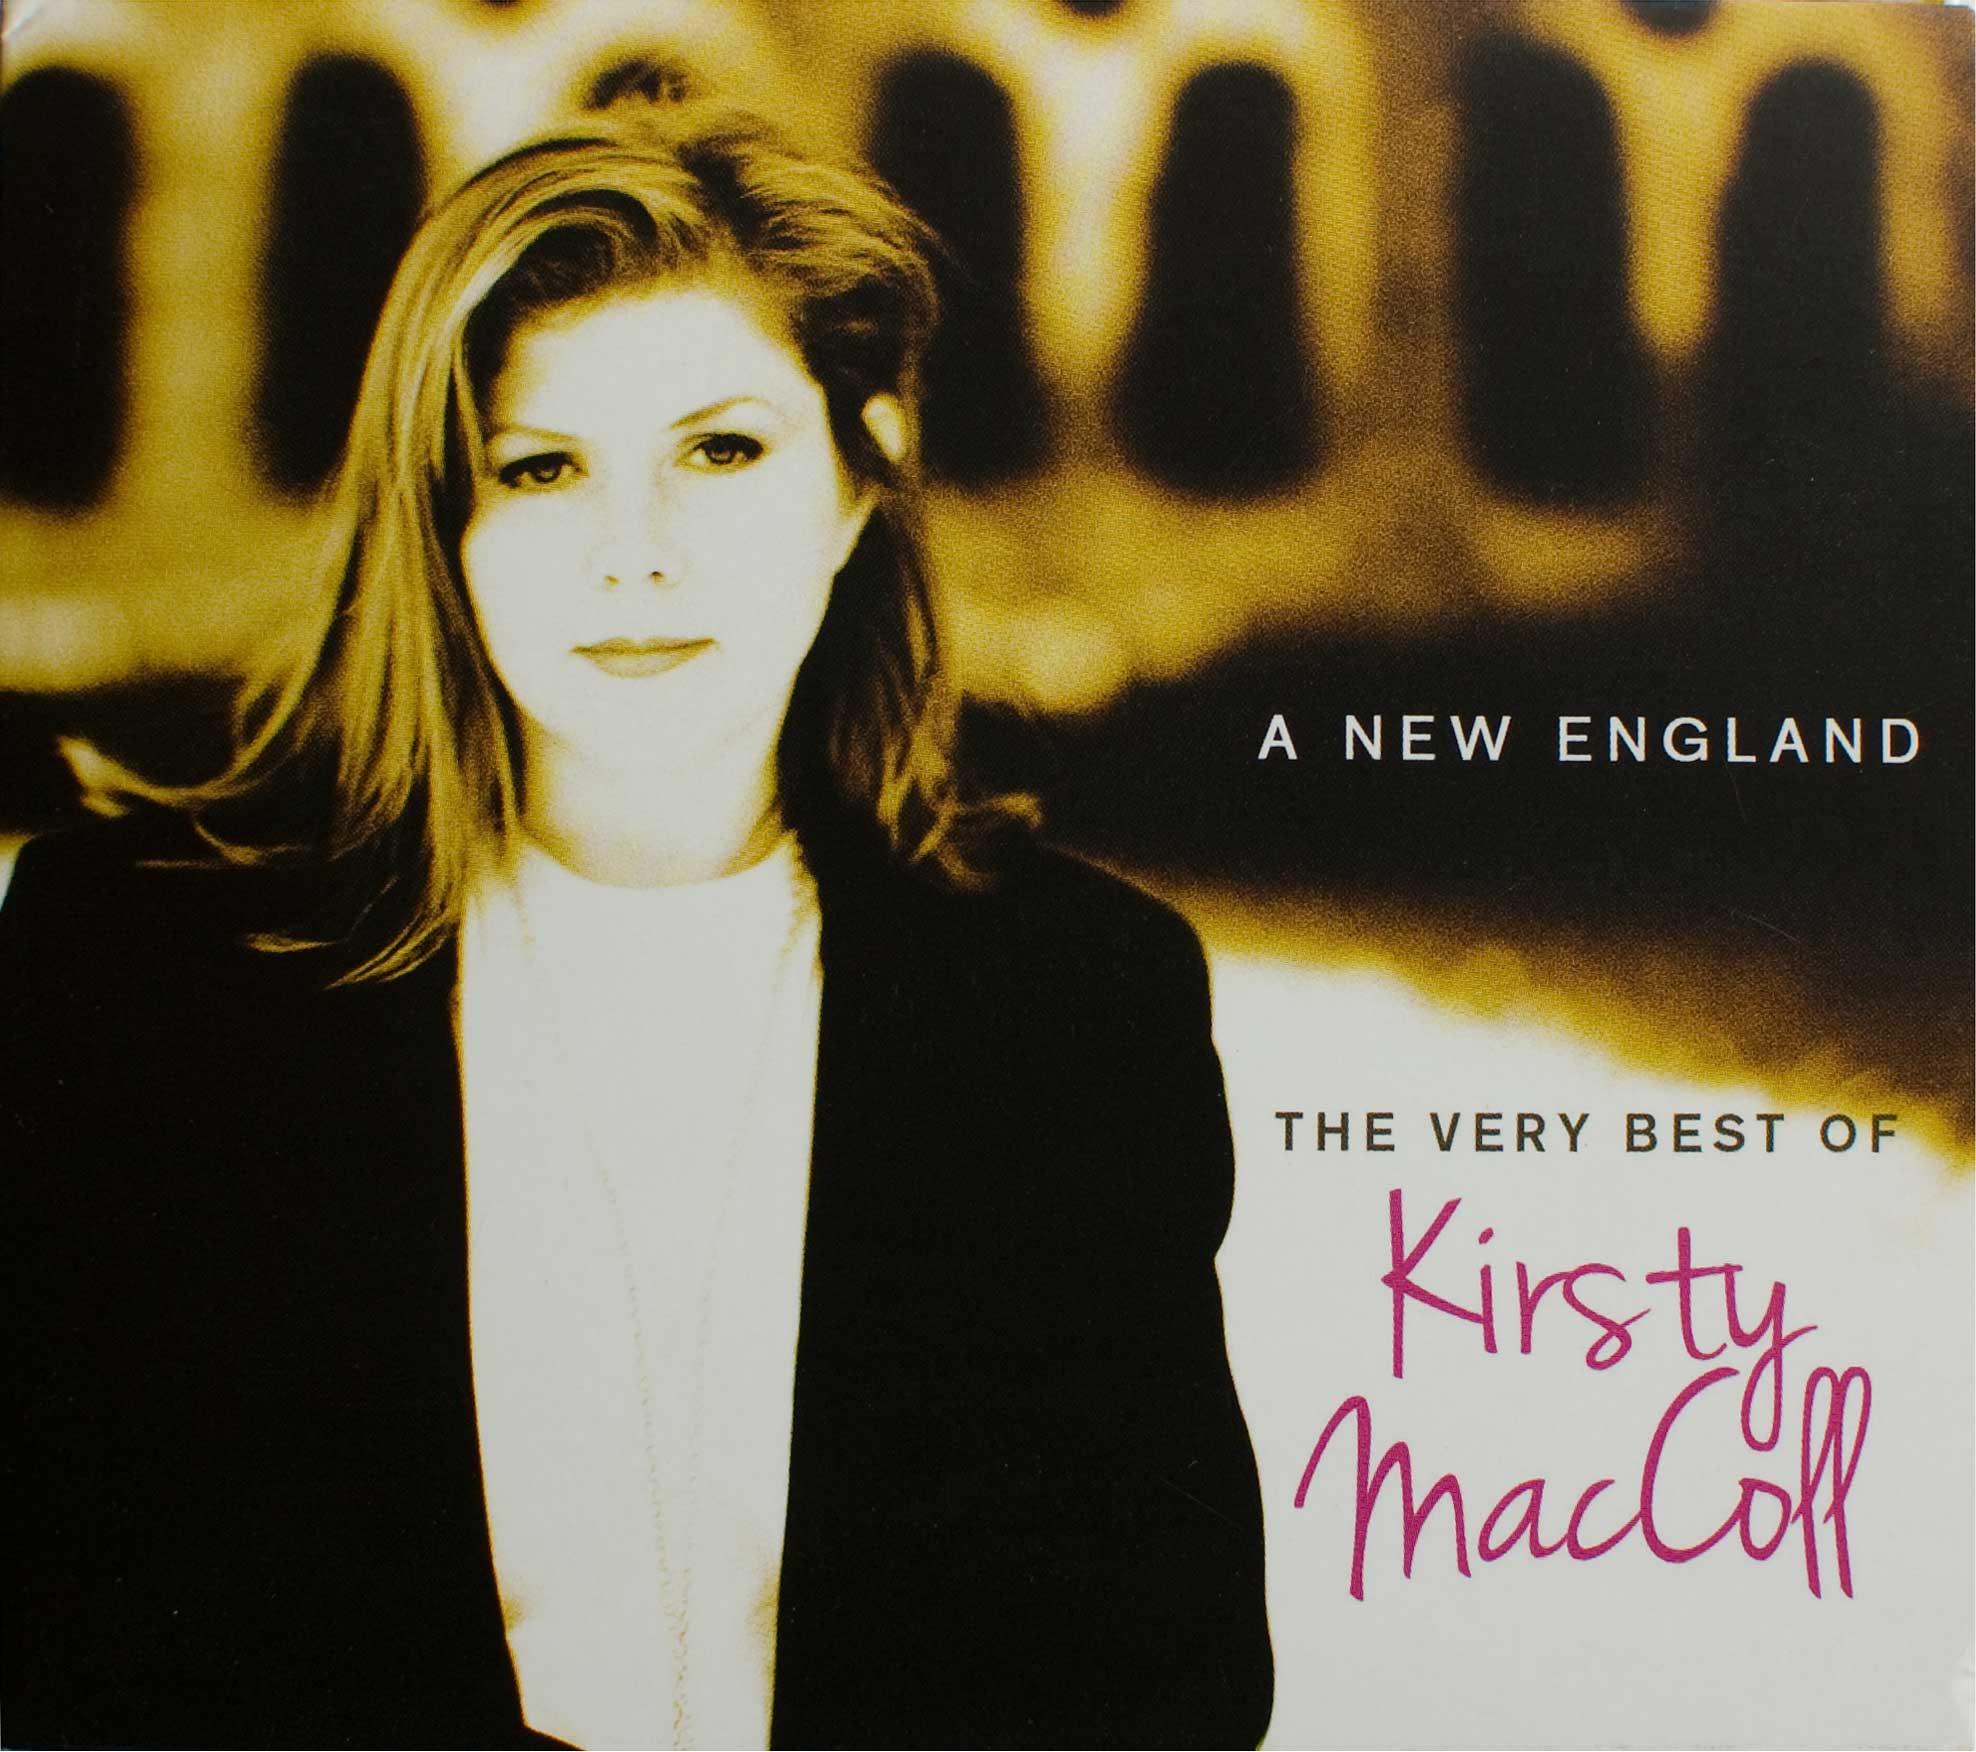 A New England: The Very Best of Kirsty MacColl (Deluxe CD 2013) front cover